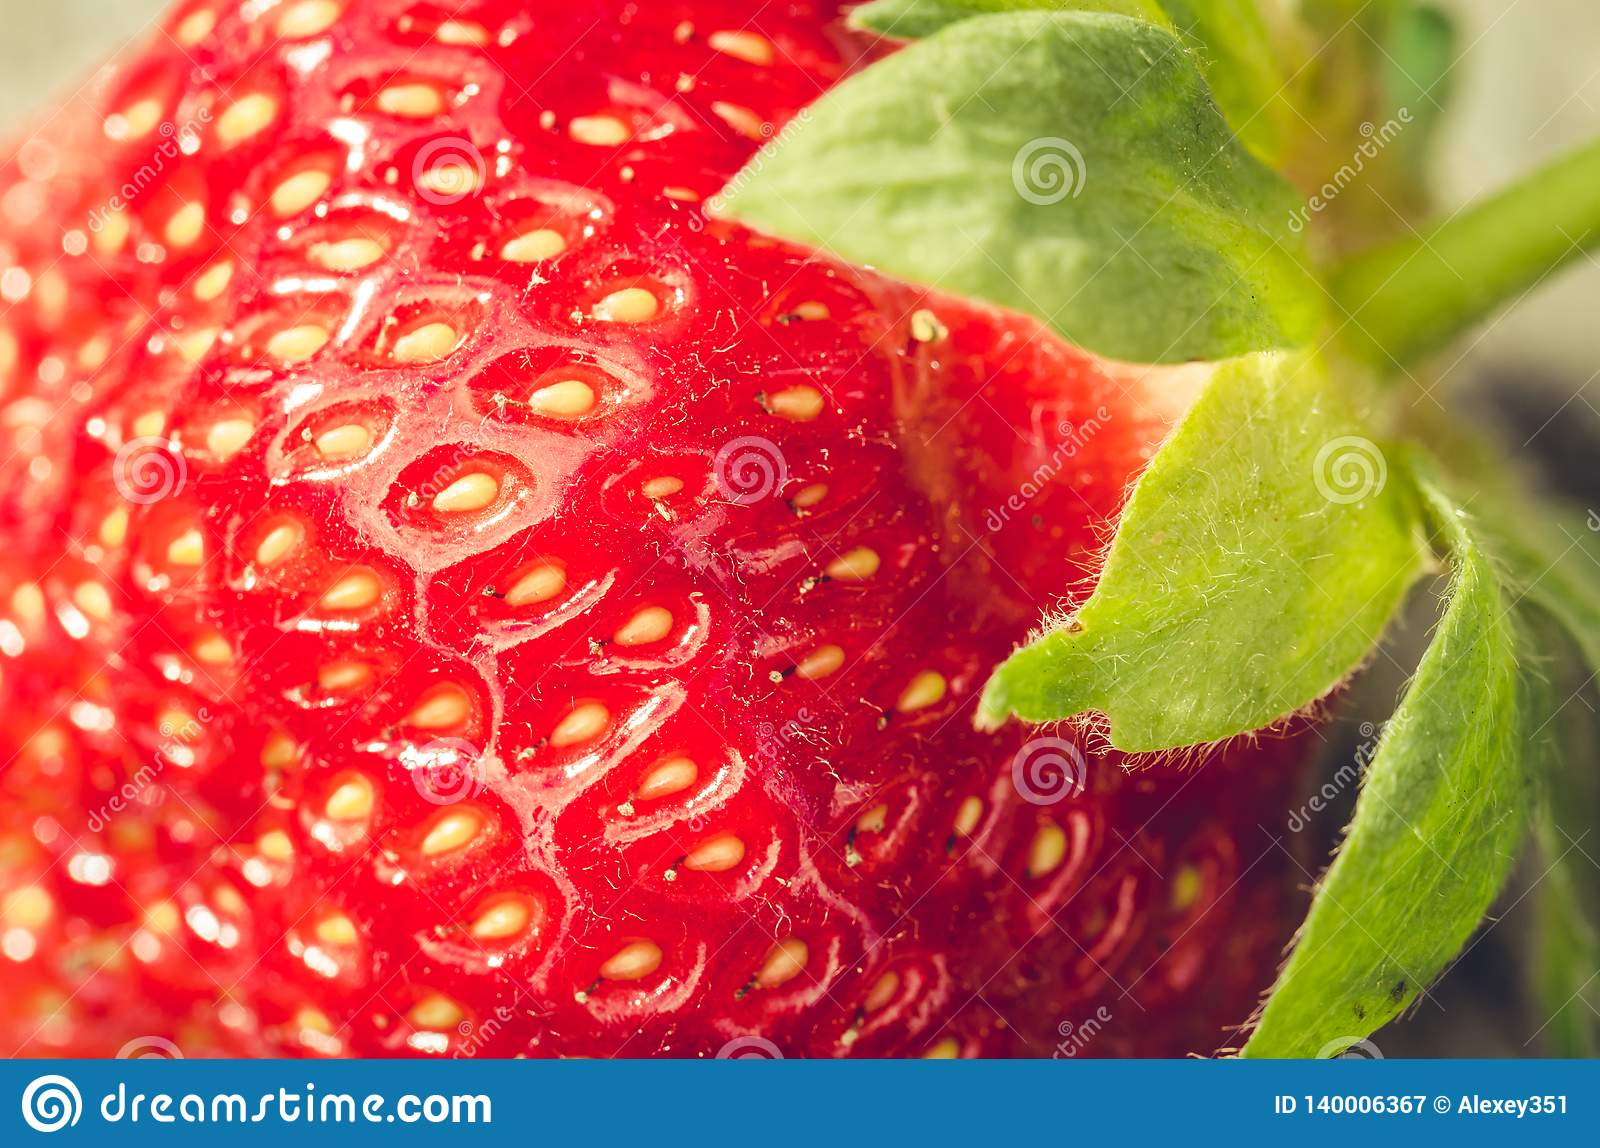 fresh ripe juicy strawberry close up /fresh ripe juicy strawberry close up. Dessert. Gourmet food